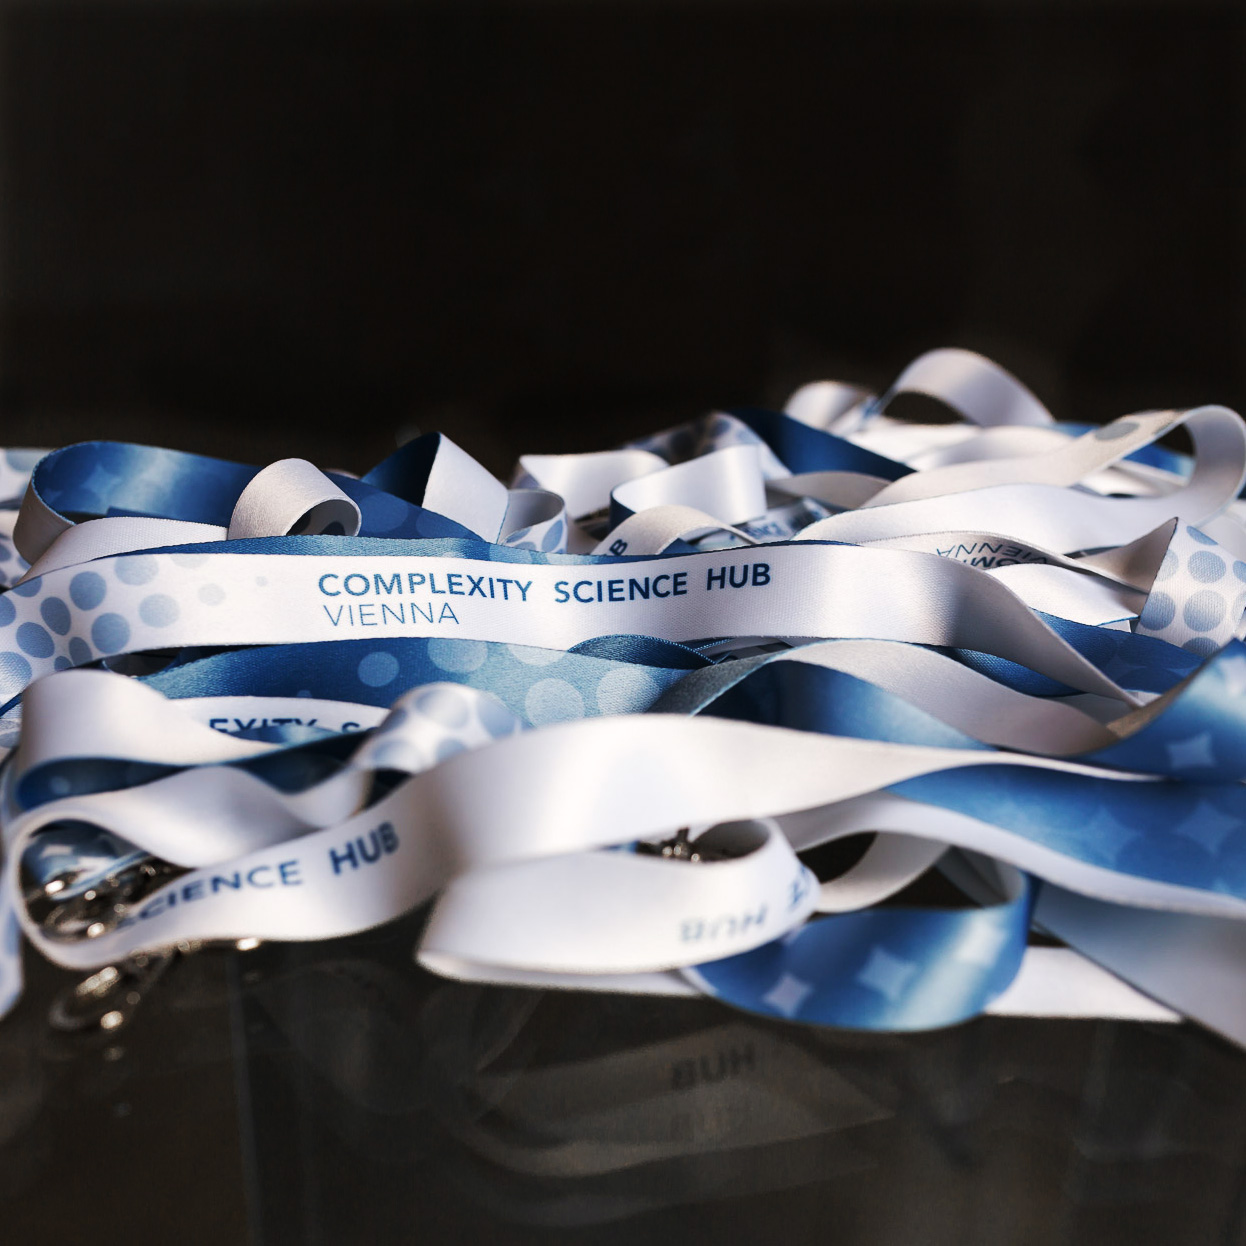 Complexity Science Hub Schlüsselband Giveaway in Blau-Weiß